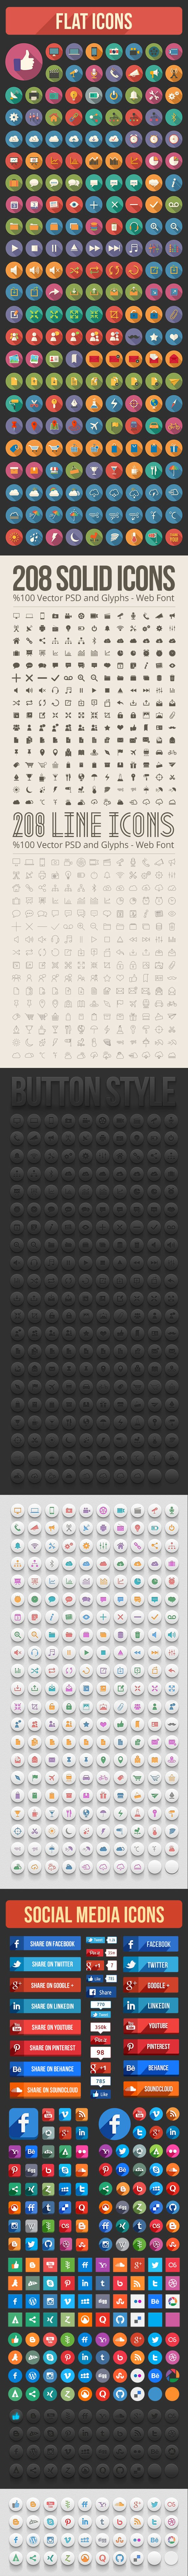 208 Solid Icons